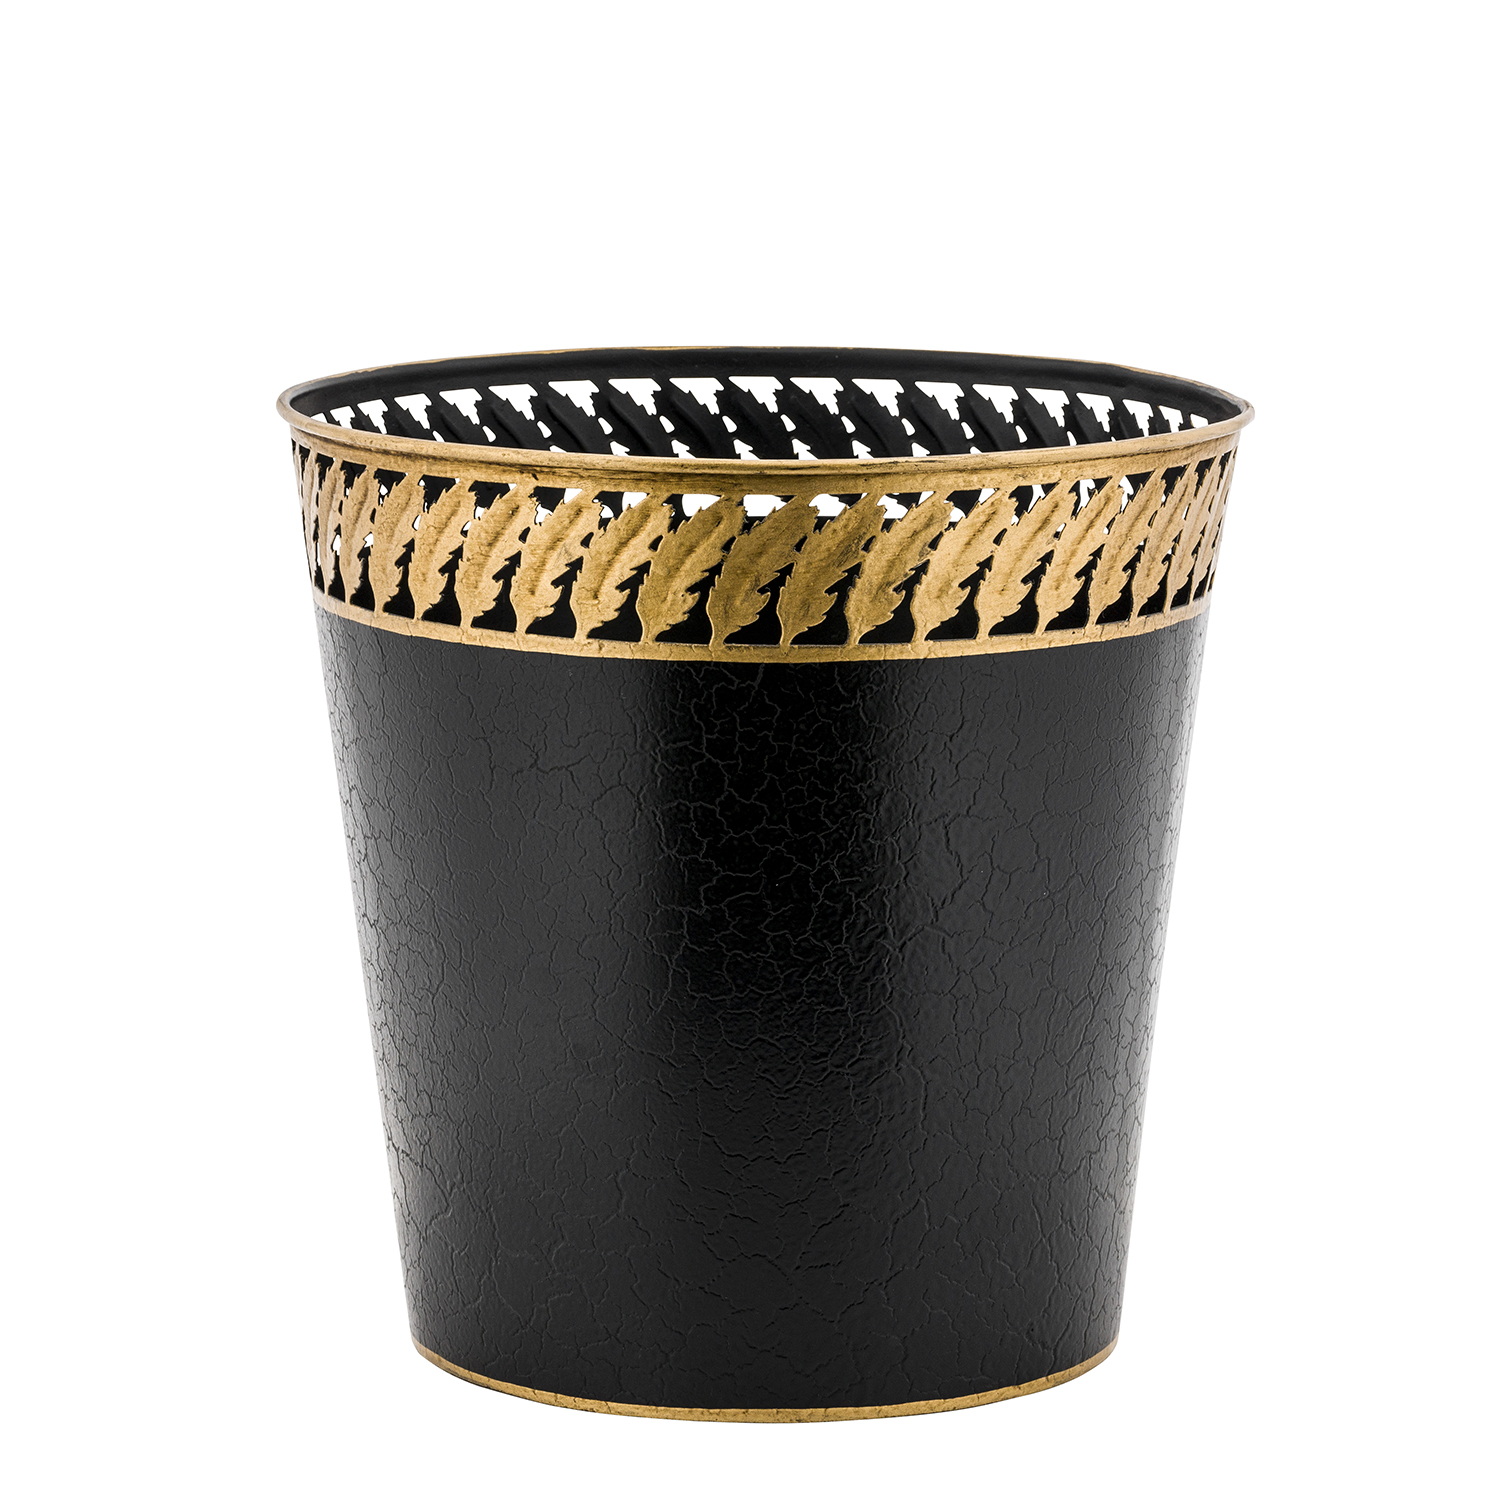 Elegant Black and Gold Waste Paper Bin Basket